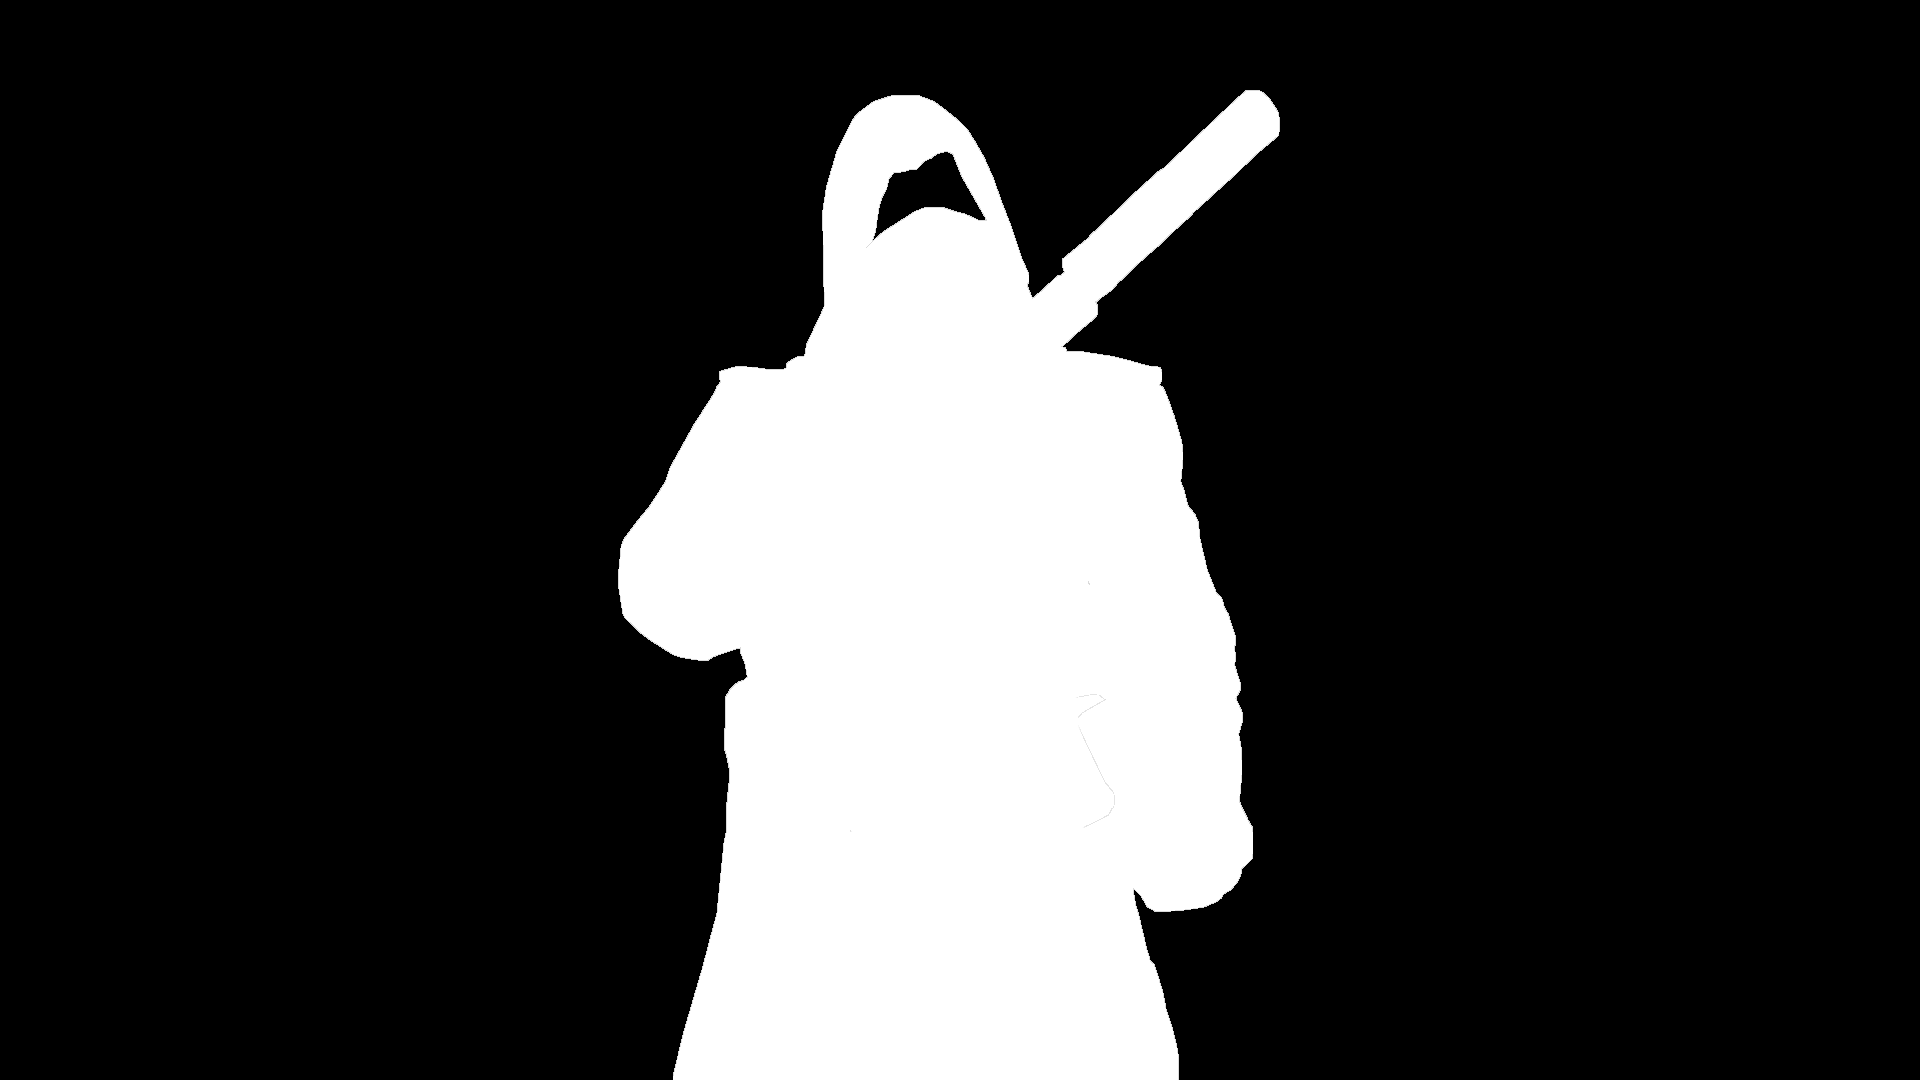 Minimalist 1920x1080 Pubg Wallpapers